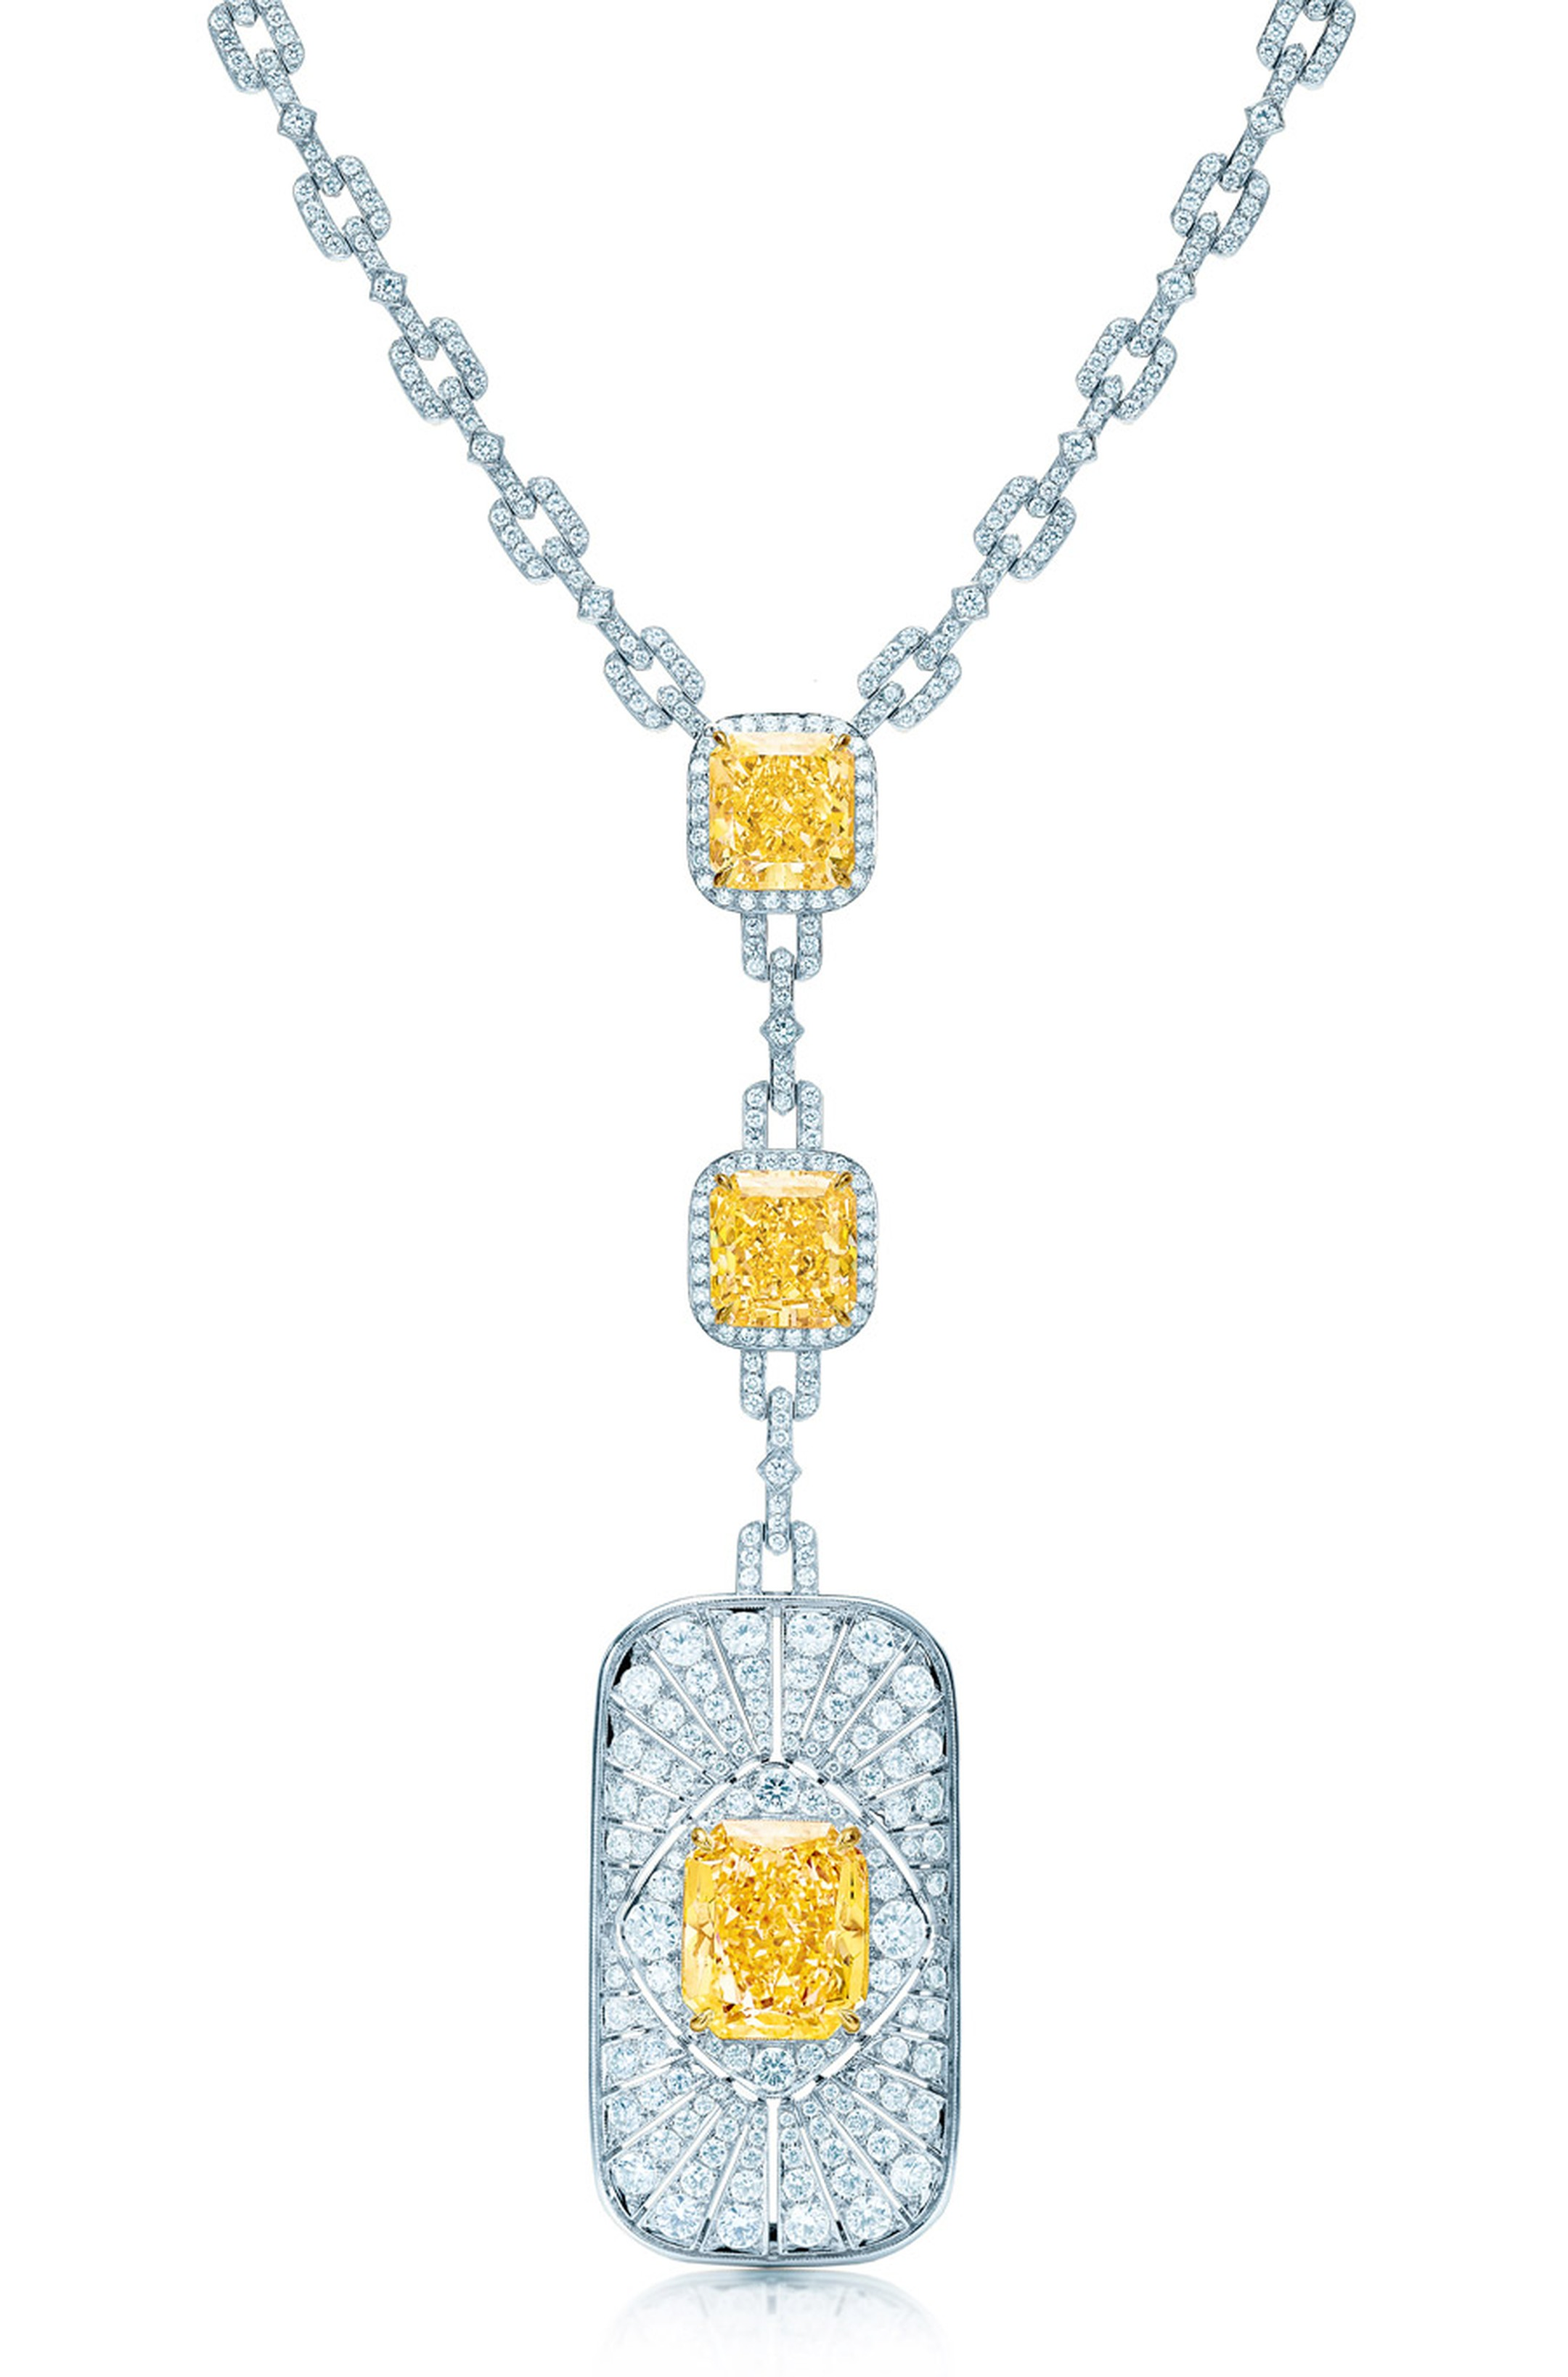 Masterpiece-Art-Deco-inspired-necklace-in-platinum-based-on-jewels-in-the-Tiffany-archives